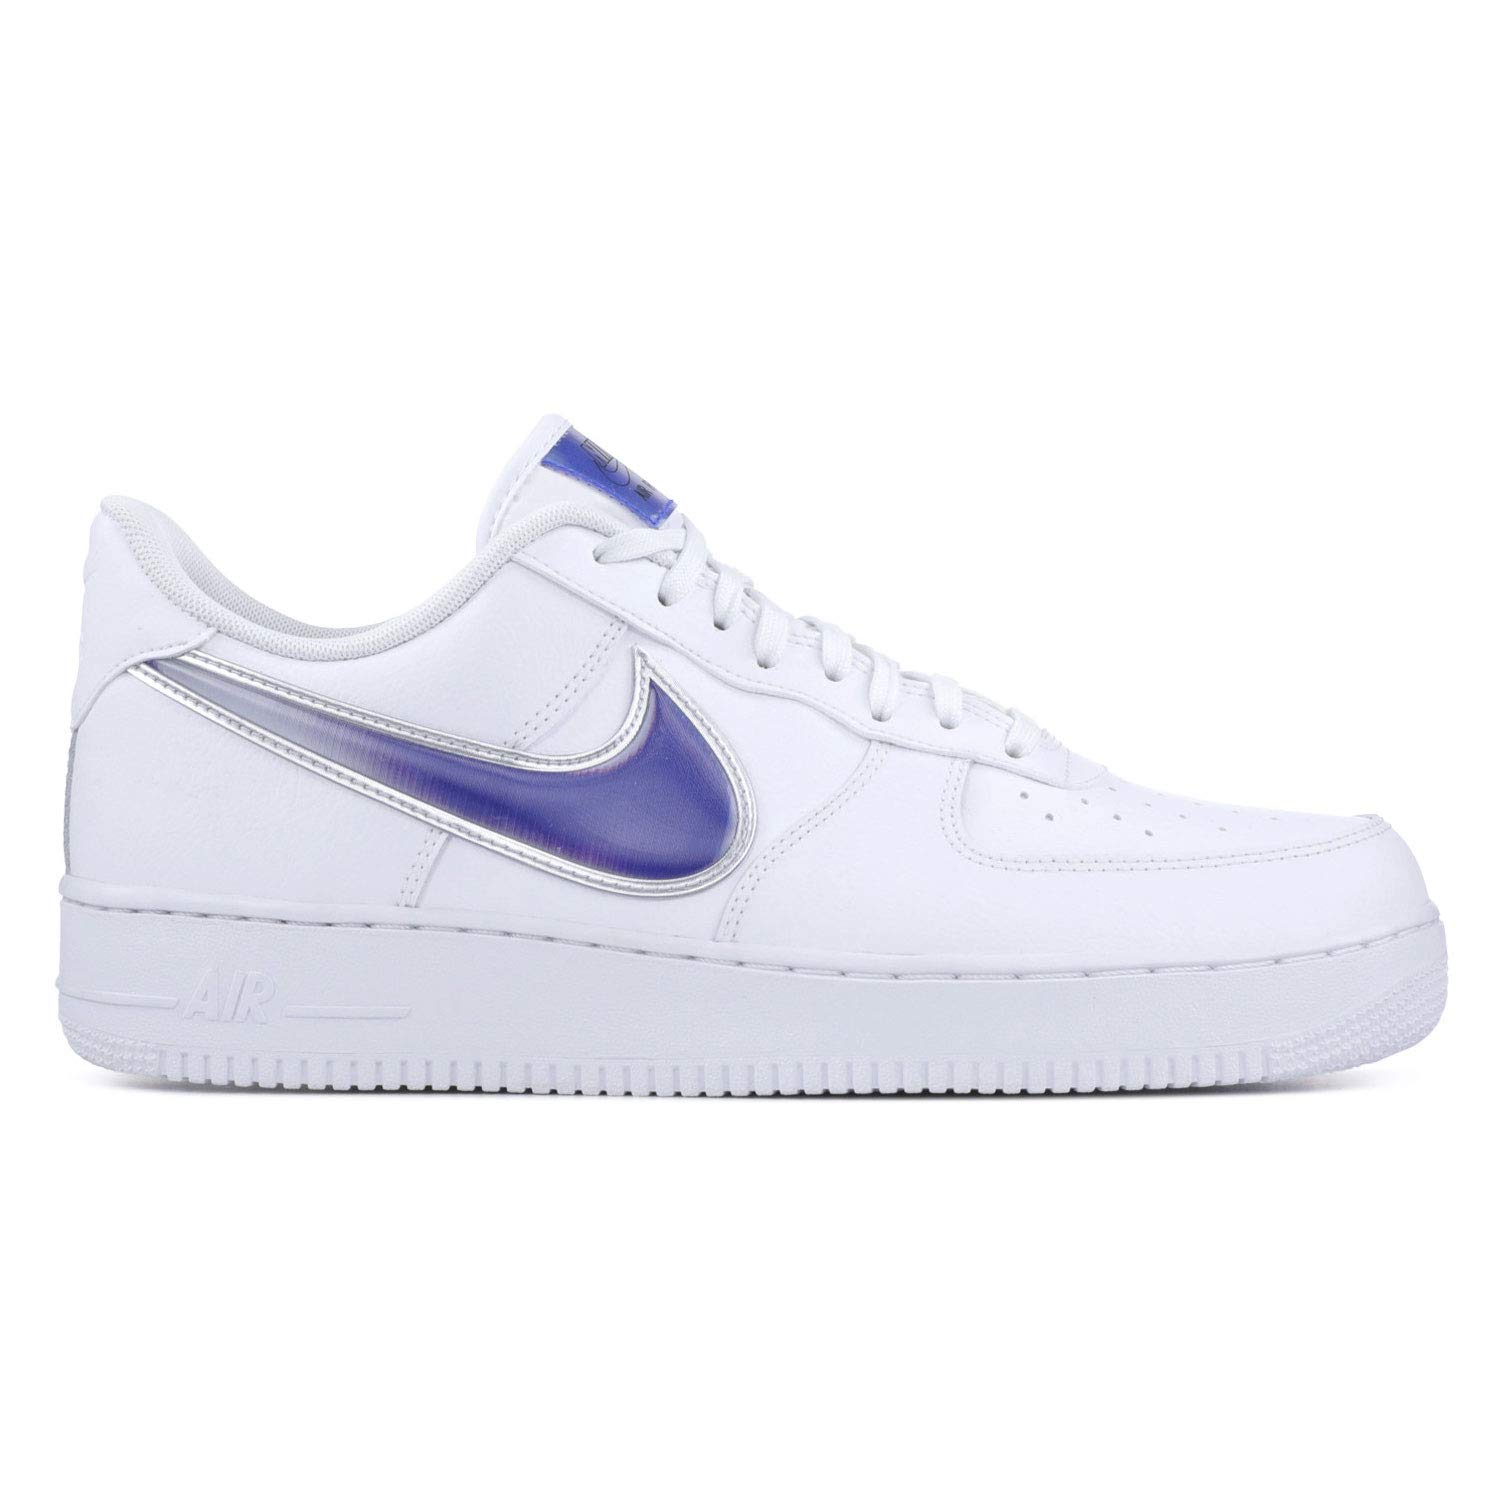 Nike Air Force 1 ´07 3 | White | Sneakers | AO2423 101